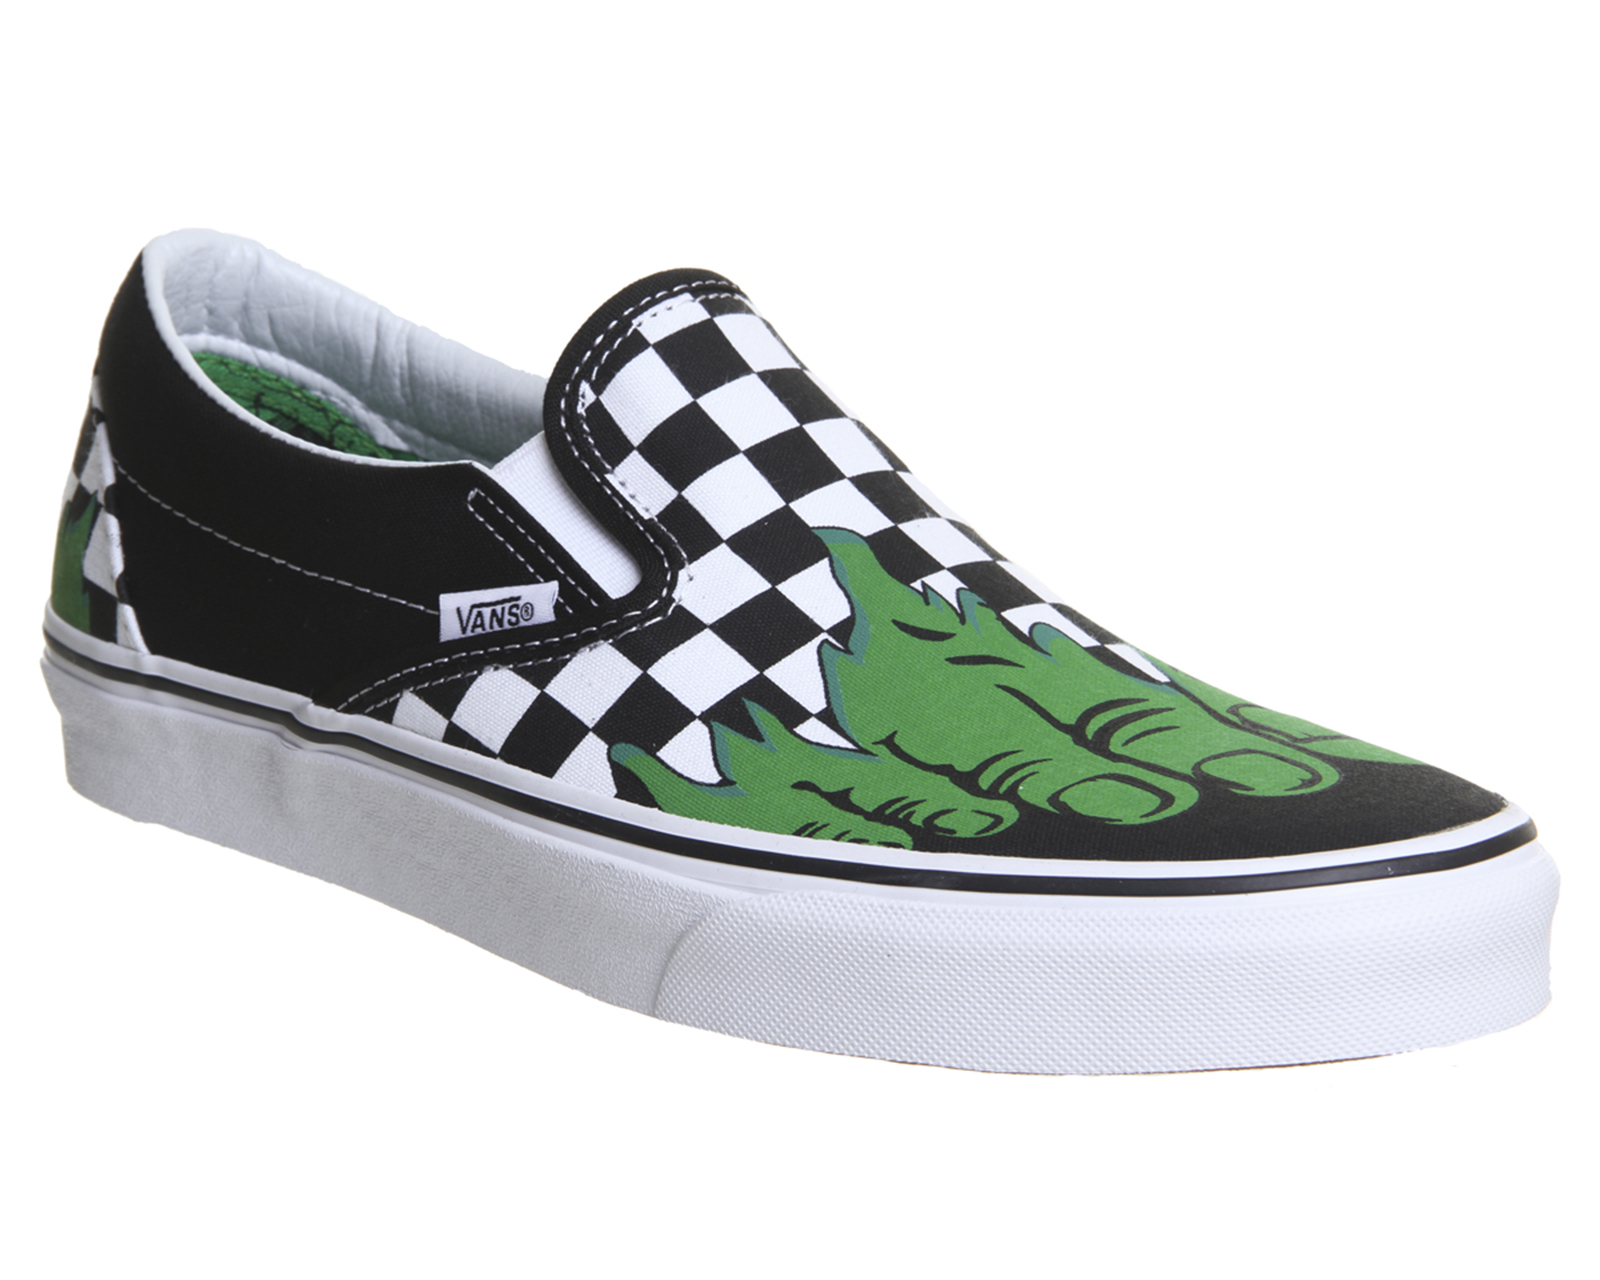 cf04e07bc5 Sentinel Mens Vans Vans Classic Slip On Trainers Hulk Checkerboard Marvel  Trainers Shoes